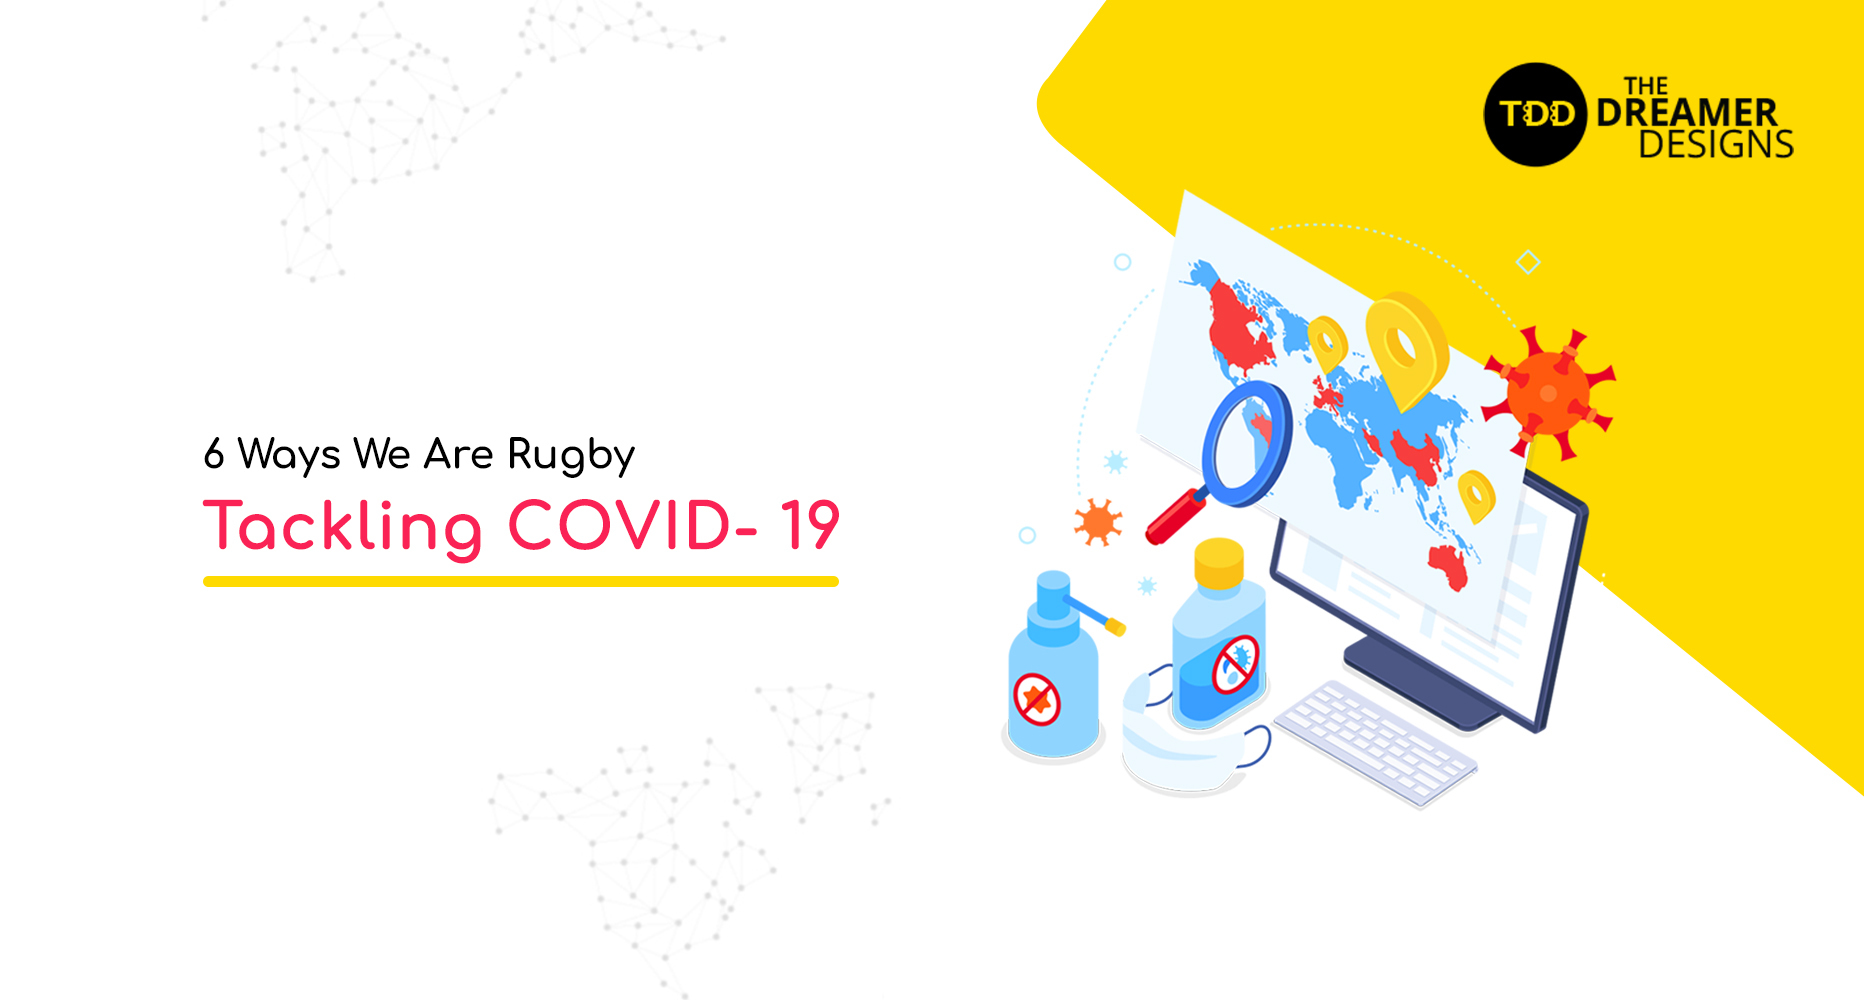 6 ways we are Rugby tackling COVID- 19